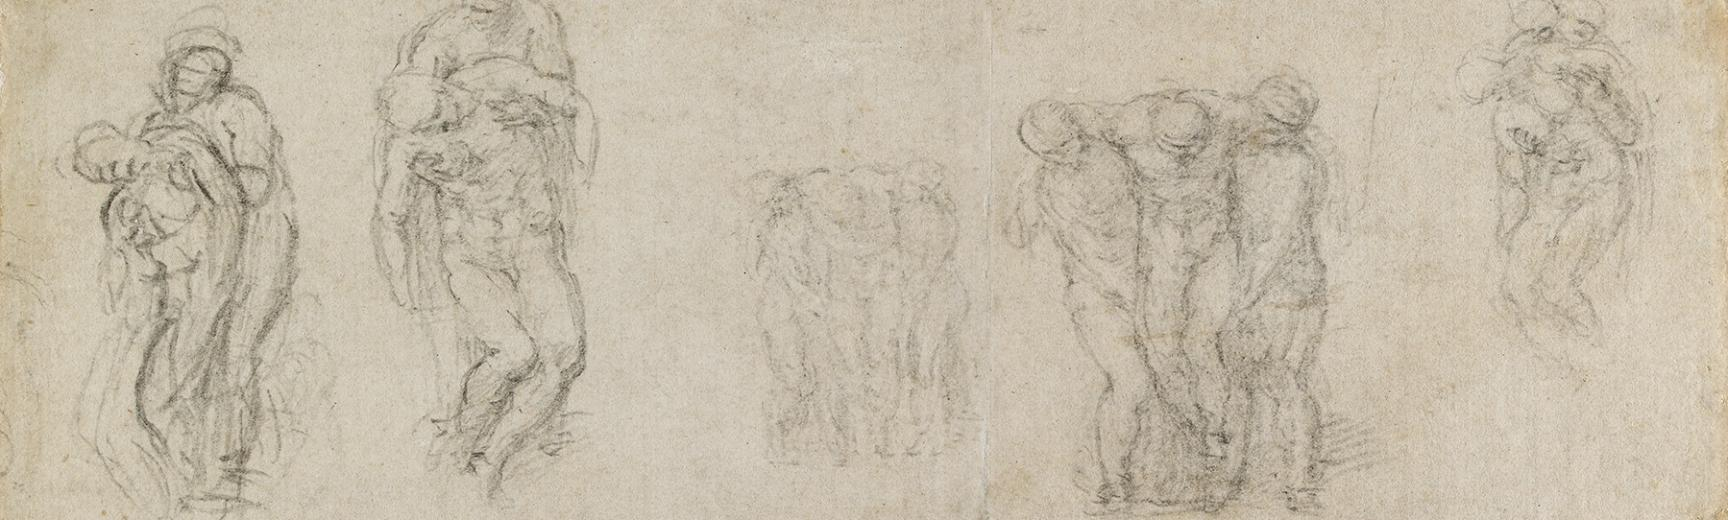 Studies for a Pieta and an entombment by Michelangelo